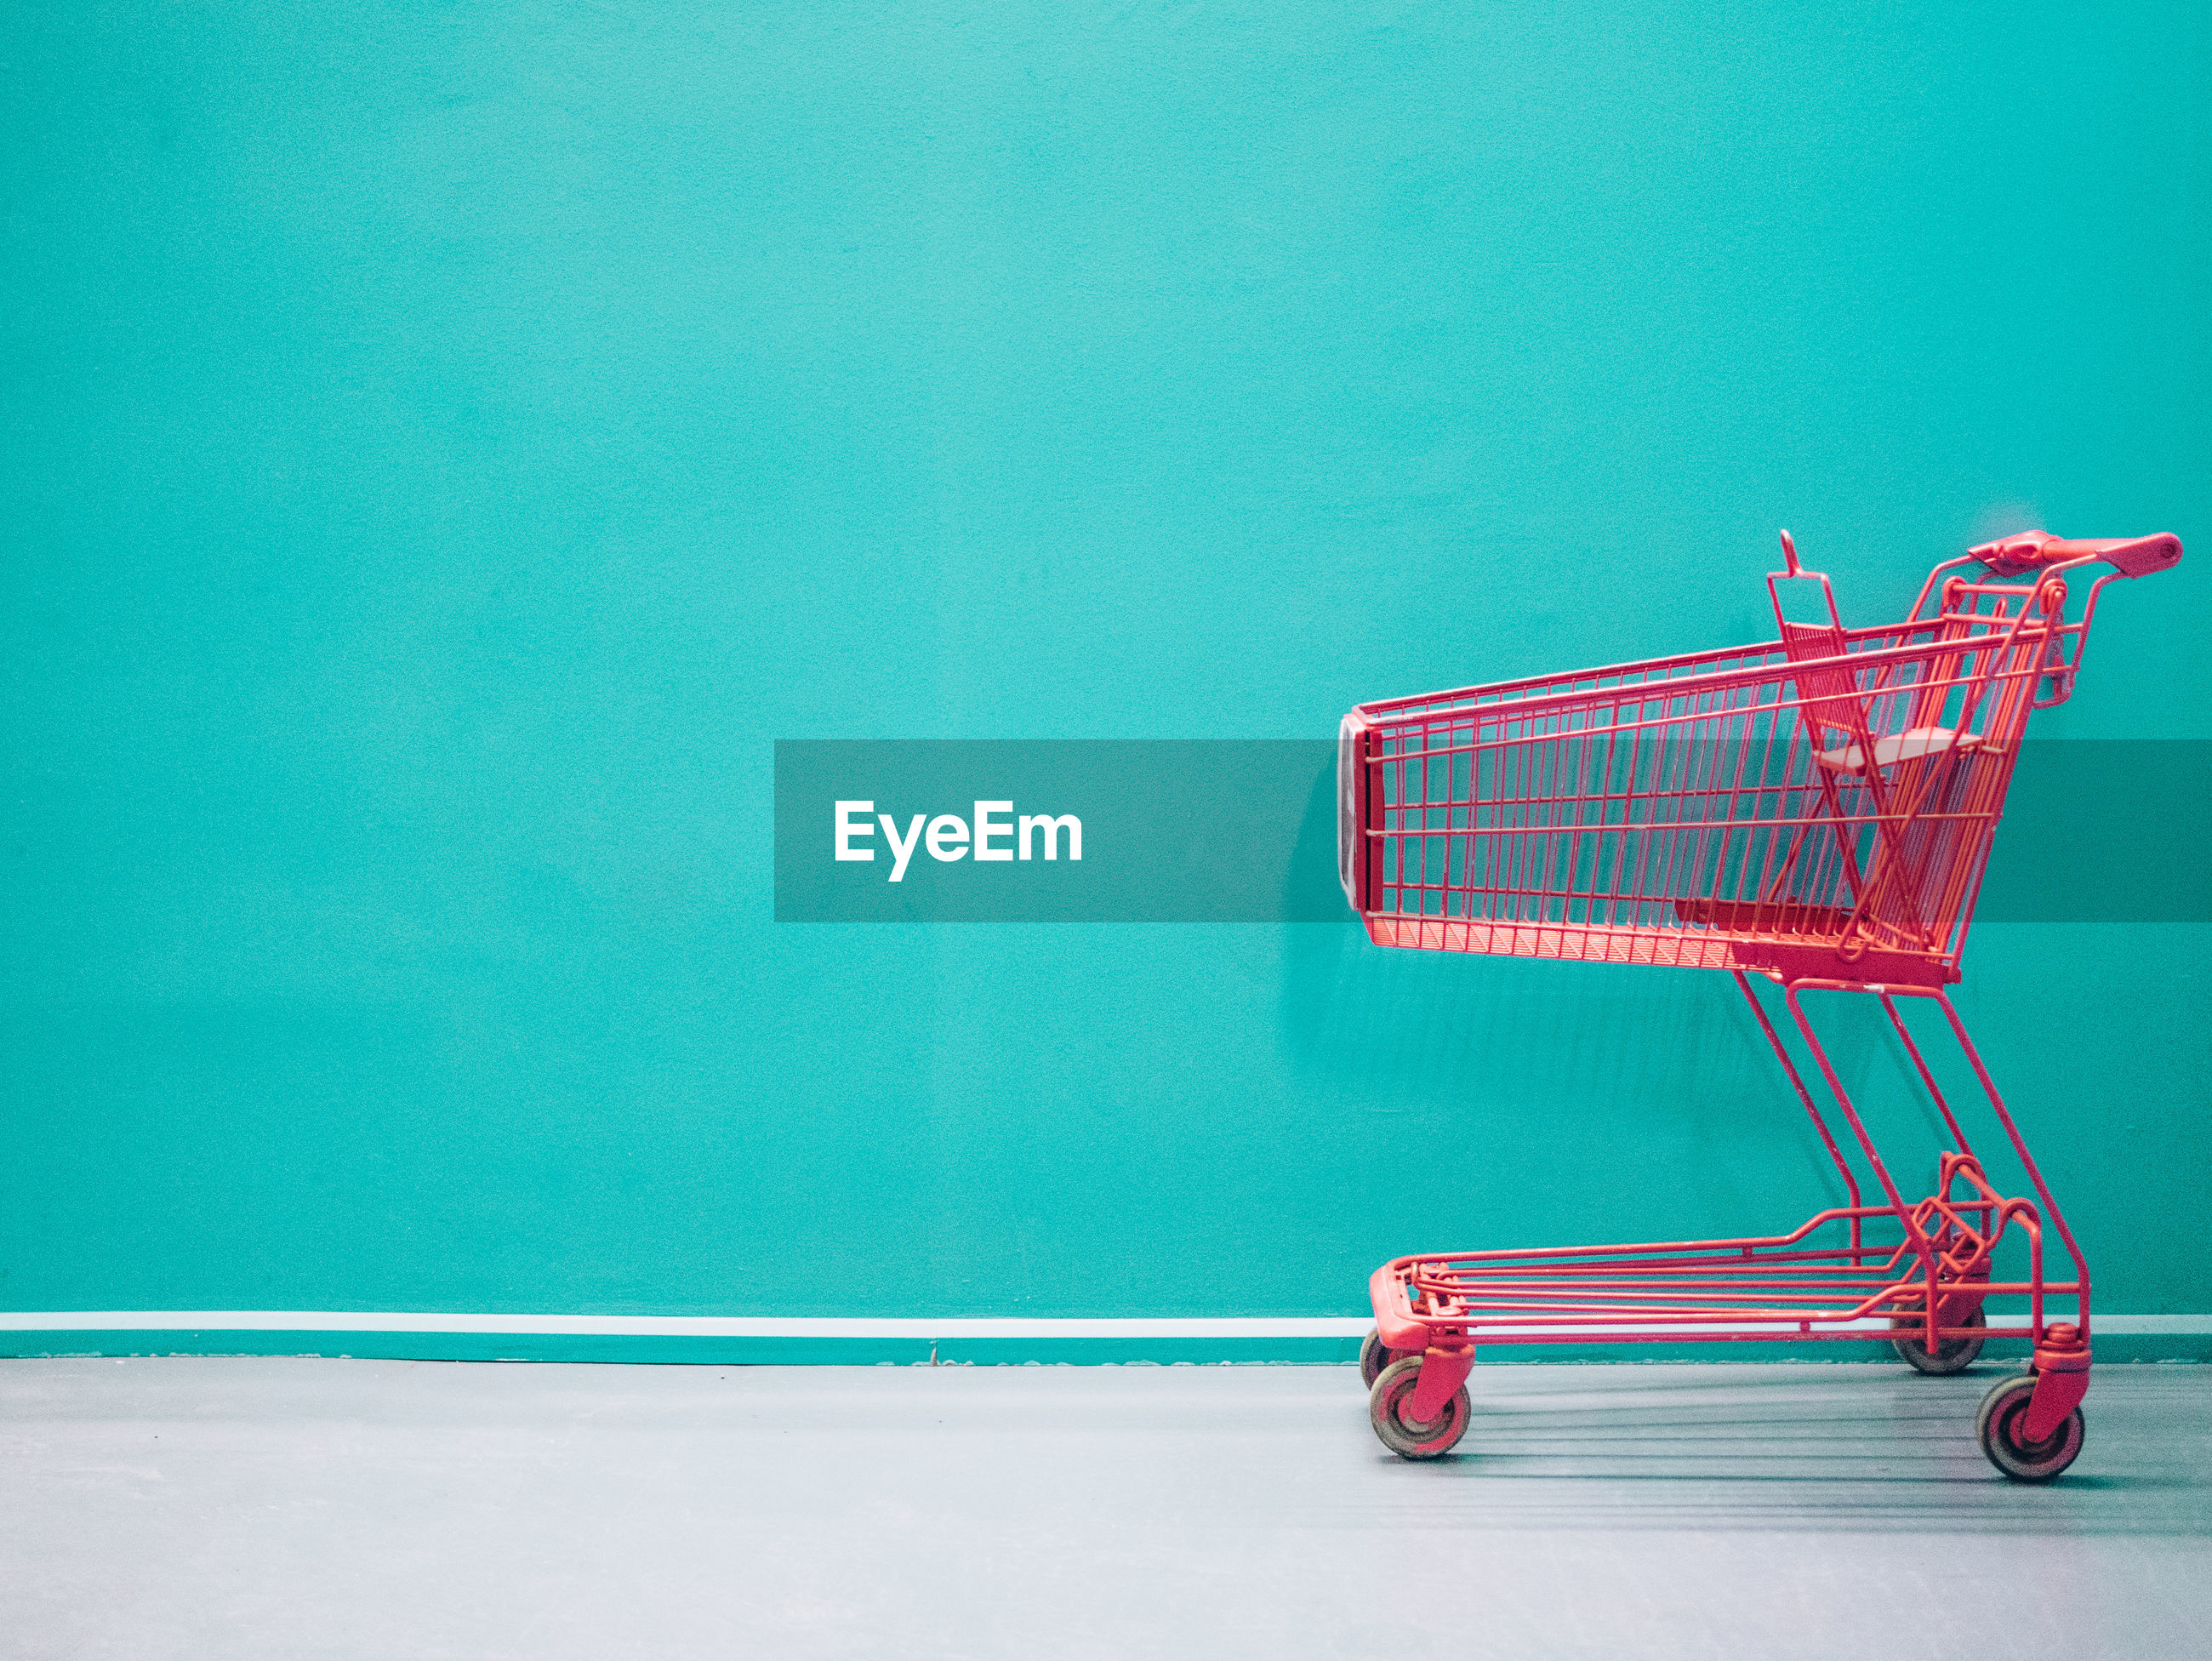 Empty shopping cart against turquoise colored wall